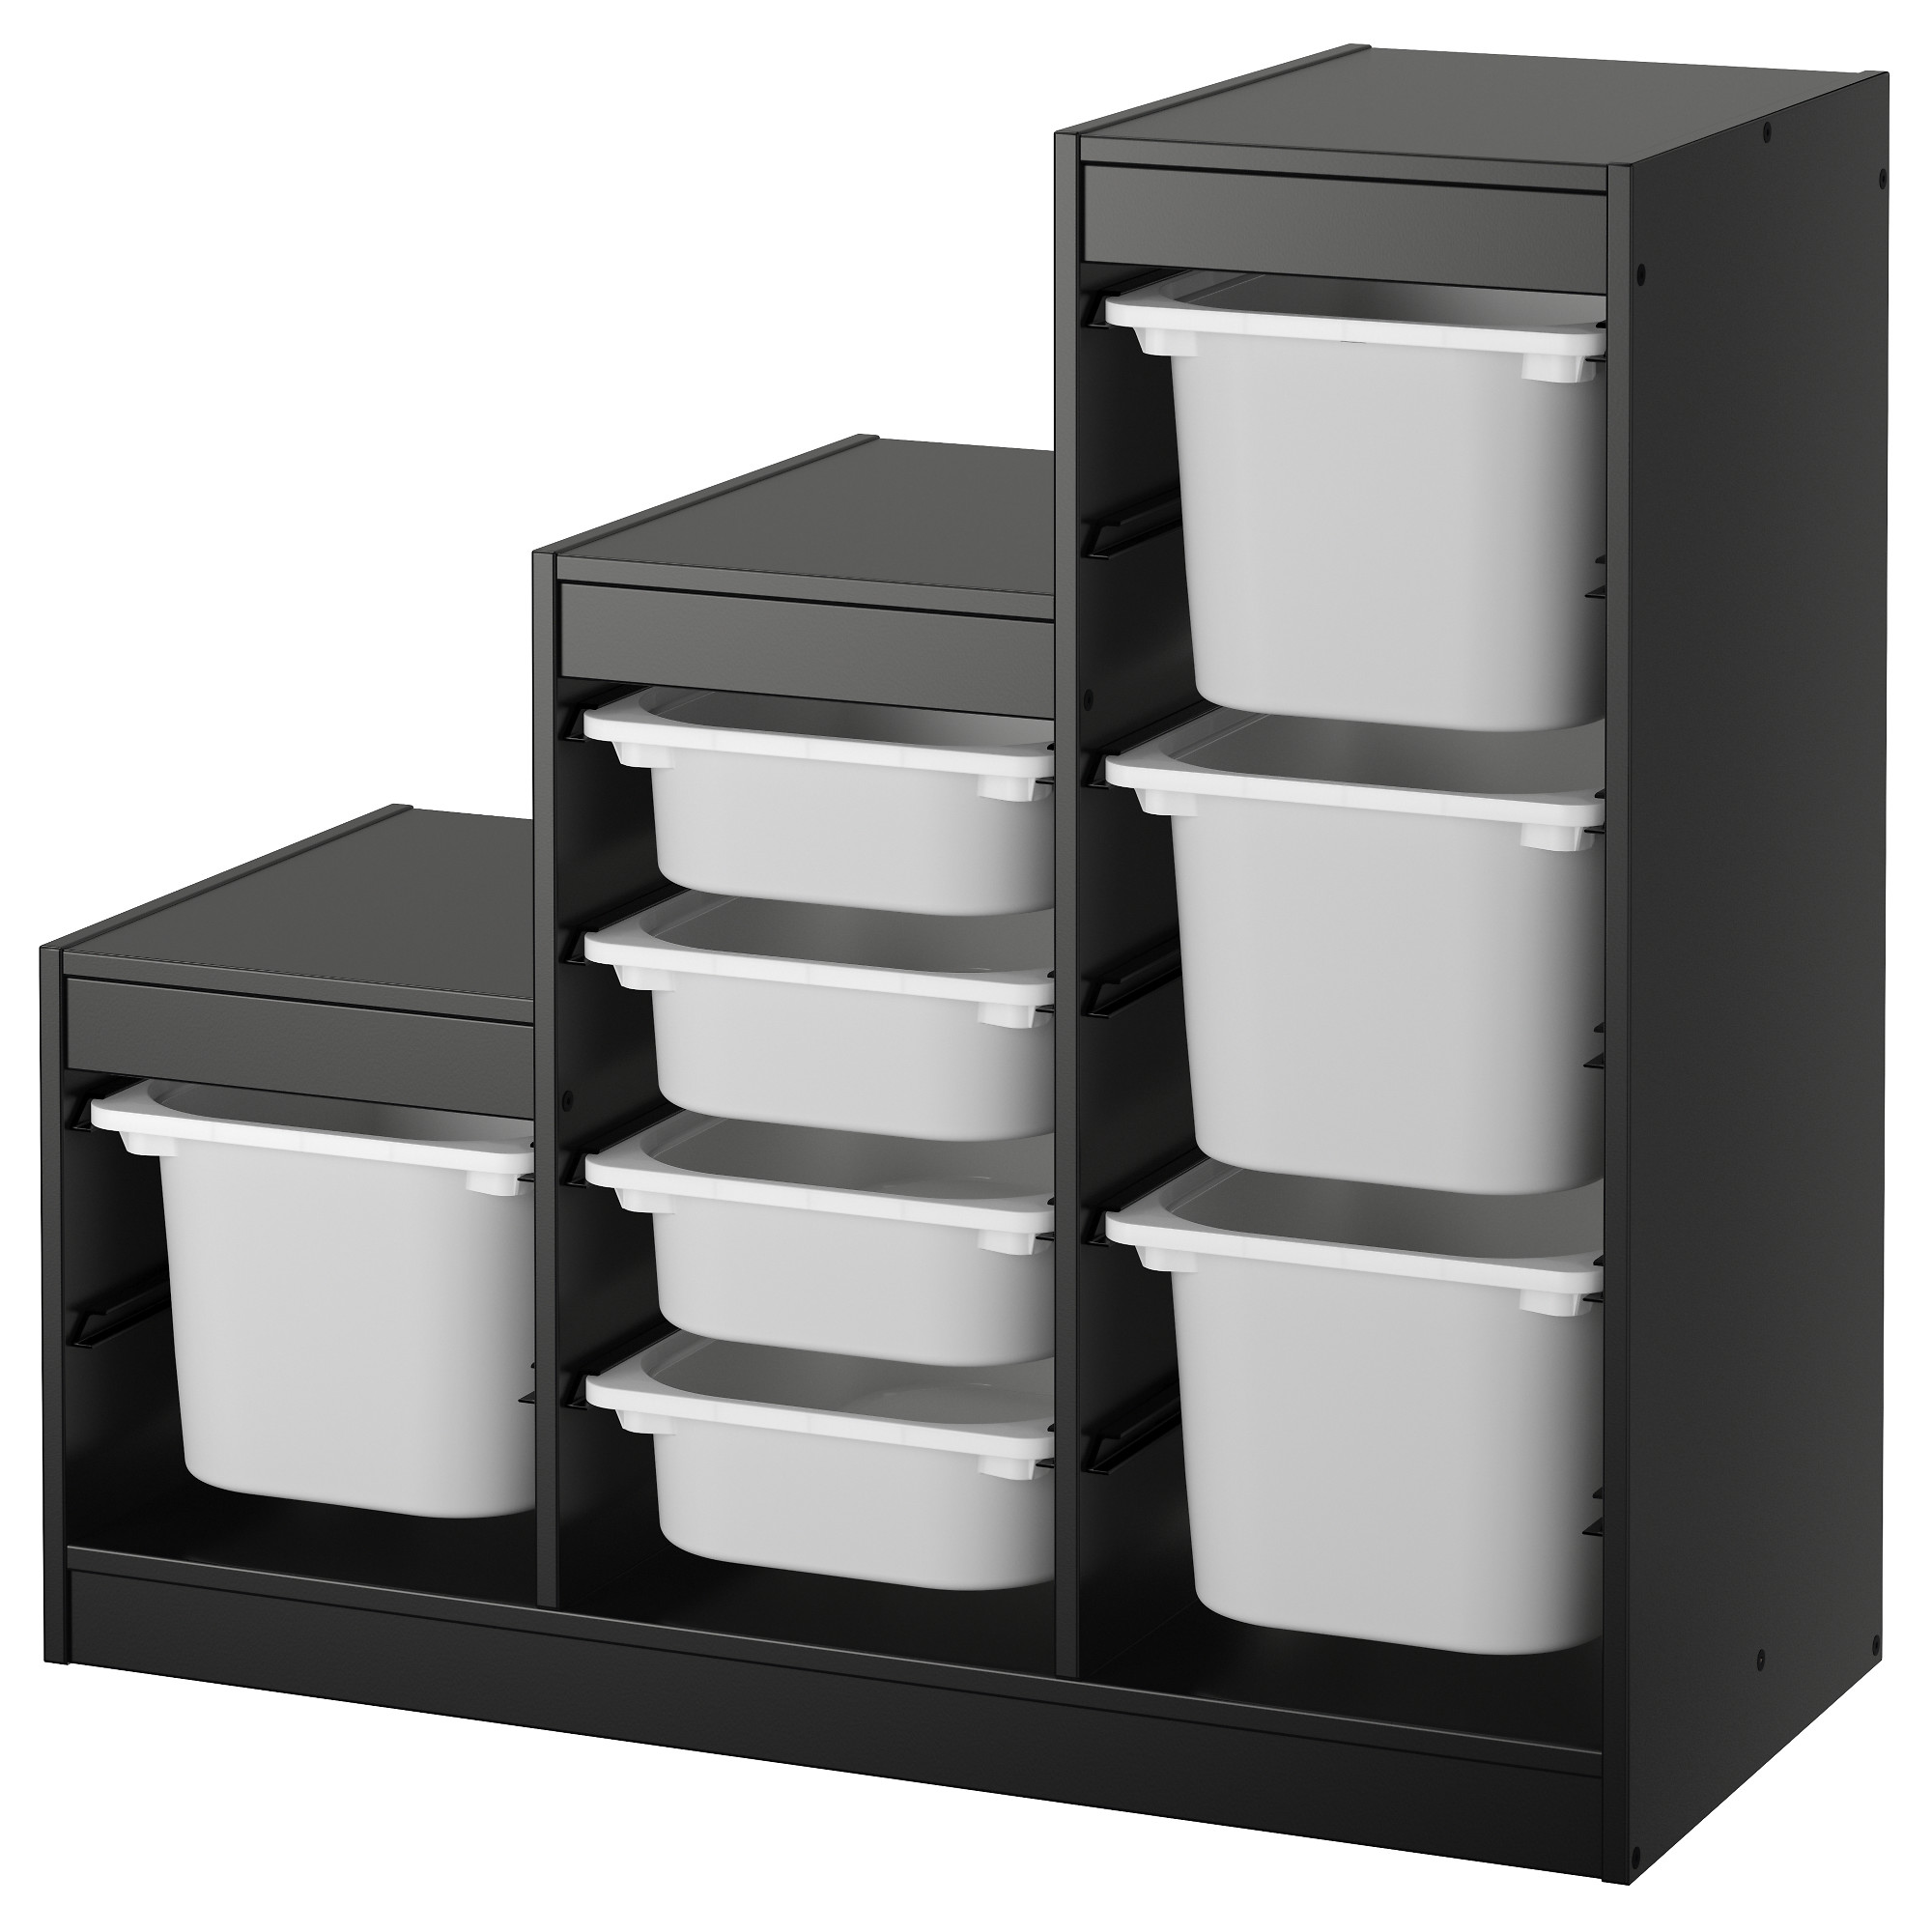 TROFAST toy storage series - Combinations & Boxes & Lids - IKEA